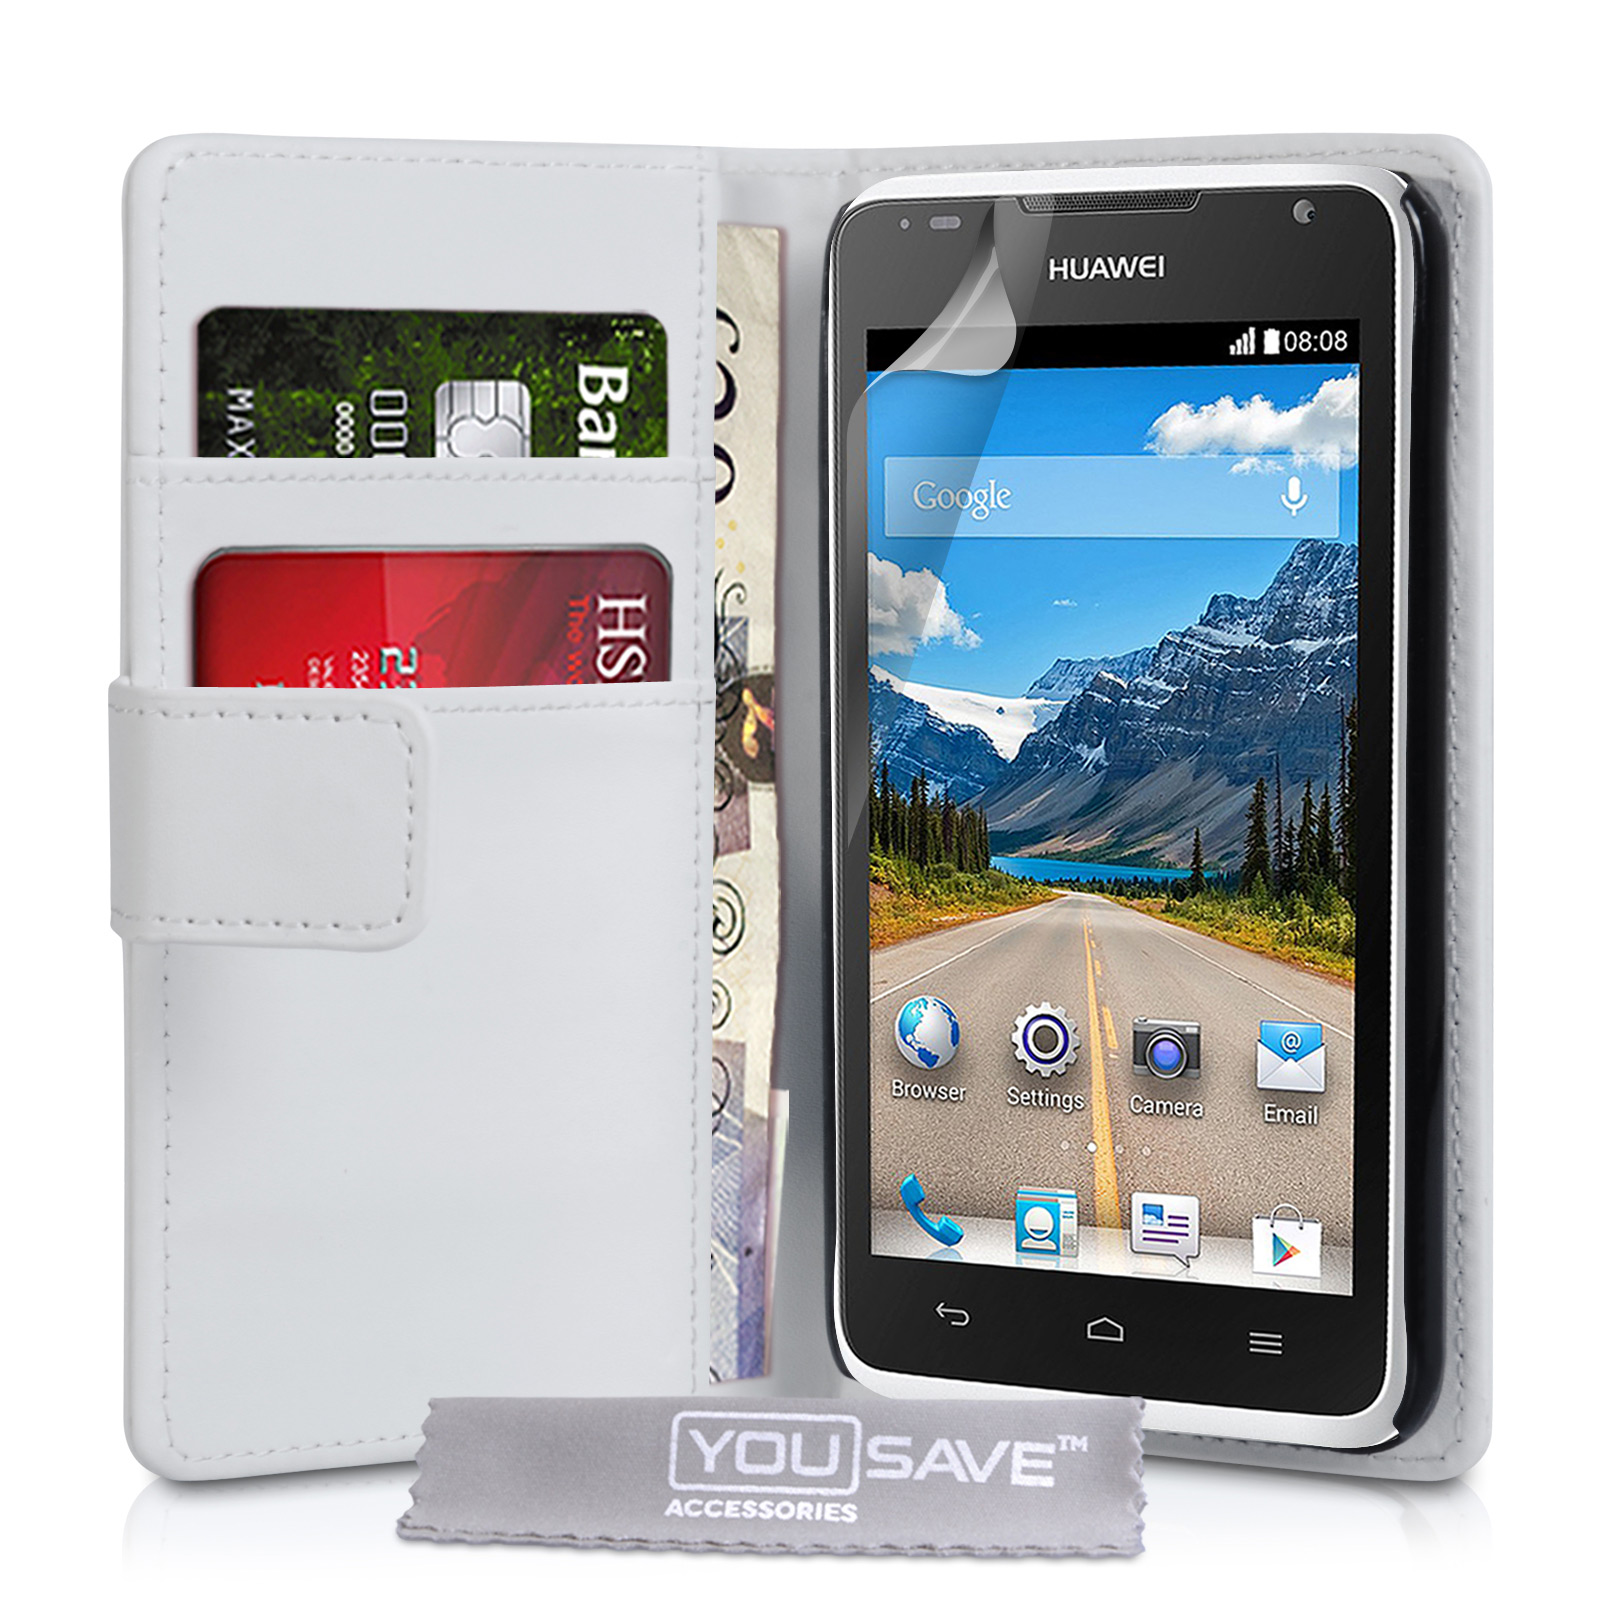 YouSave Huawei Ascend Y530 Leather-Effect Wallet Case - White